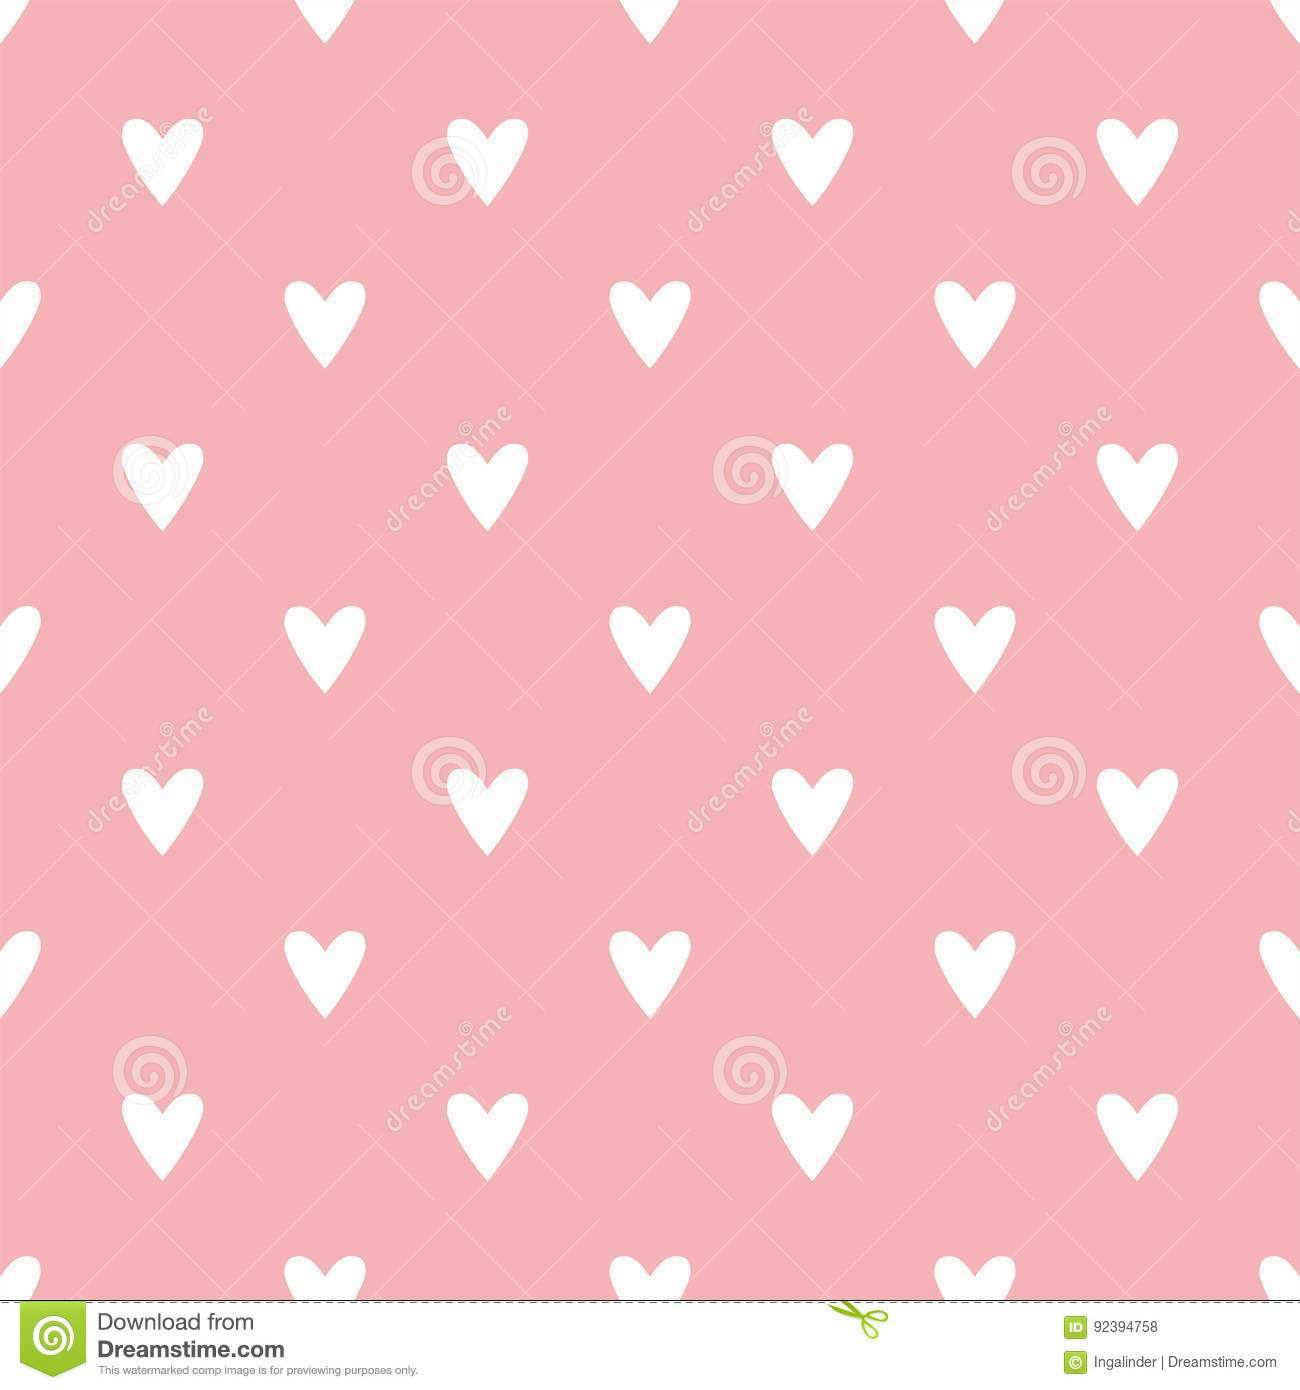 Tile Cute Vector Pattern With White Hearts On Pastel Pink Background For Wallpaper